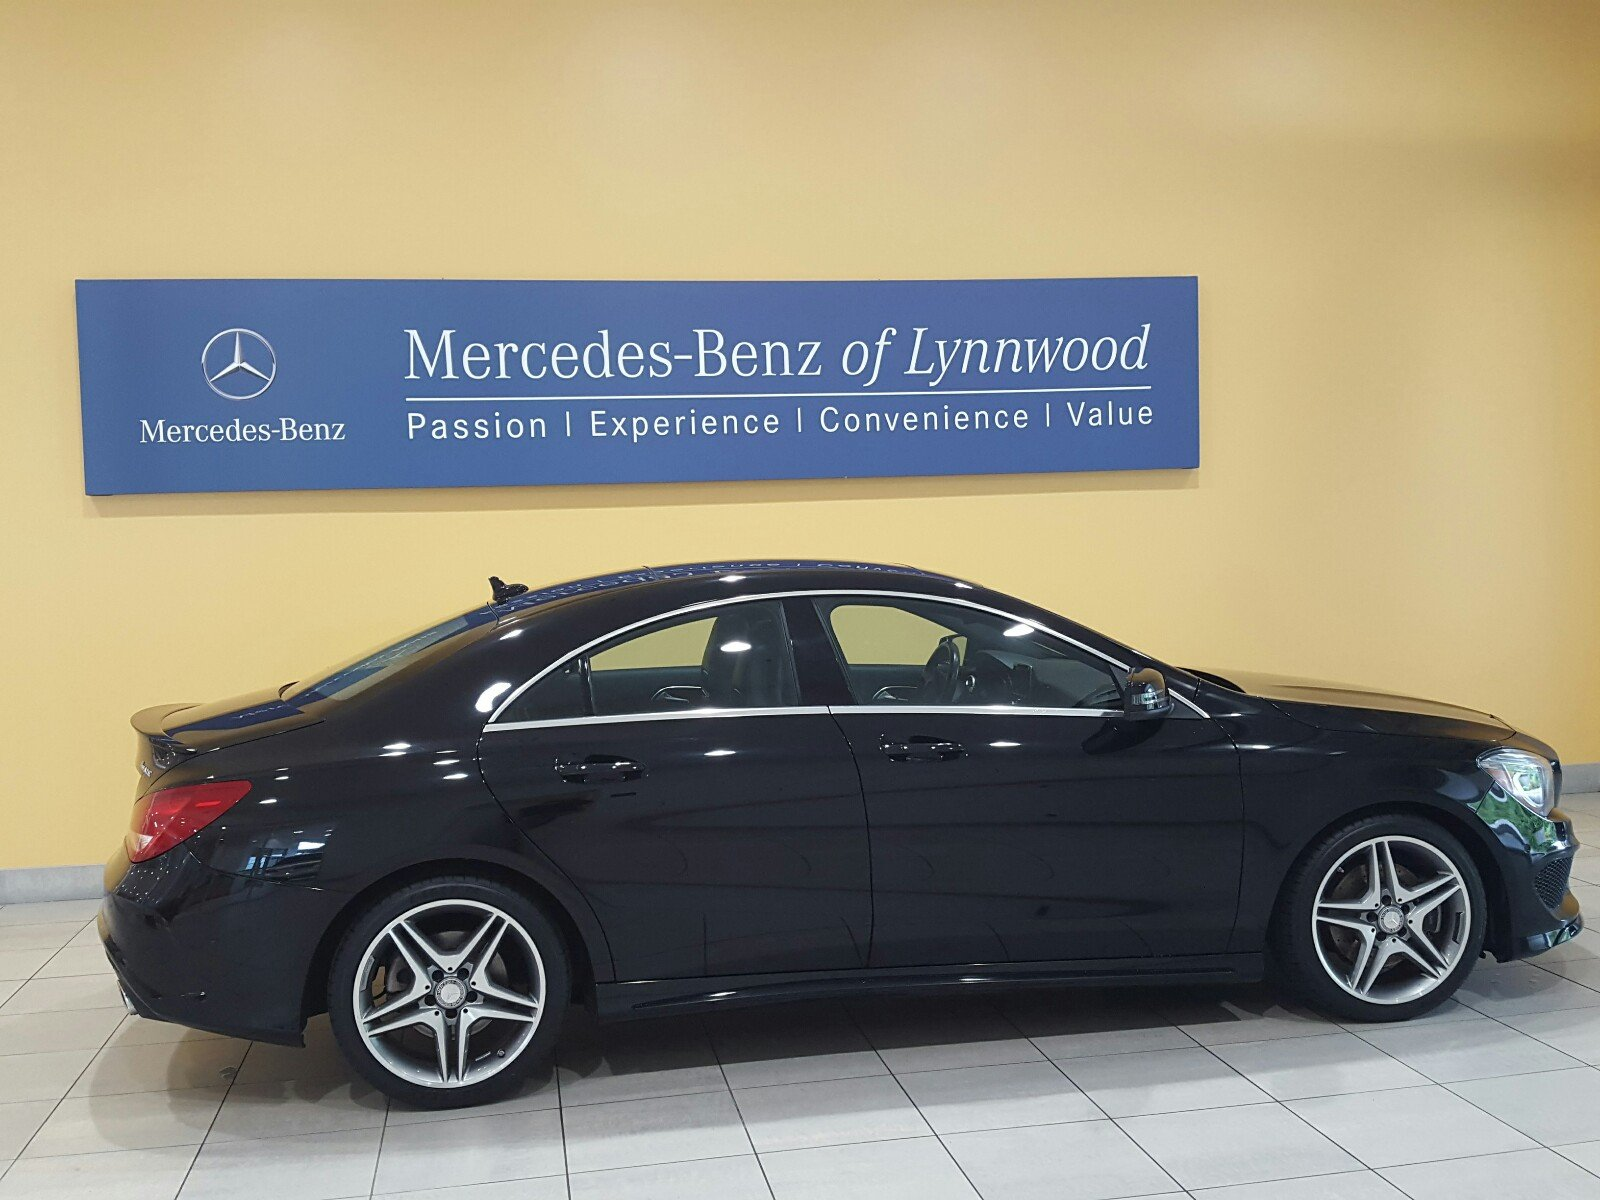 Certified pre owned 2014 mercedes benz cla cla 250 4matic for Certified mercedes benz